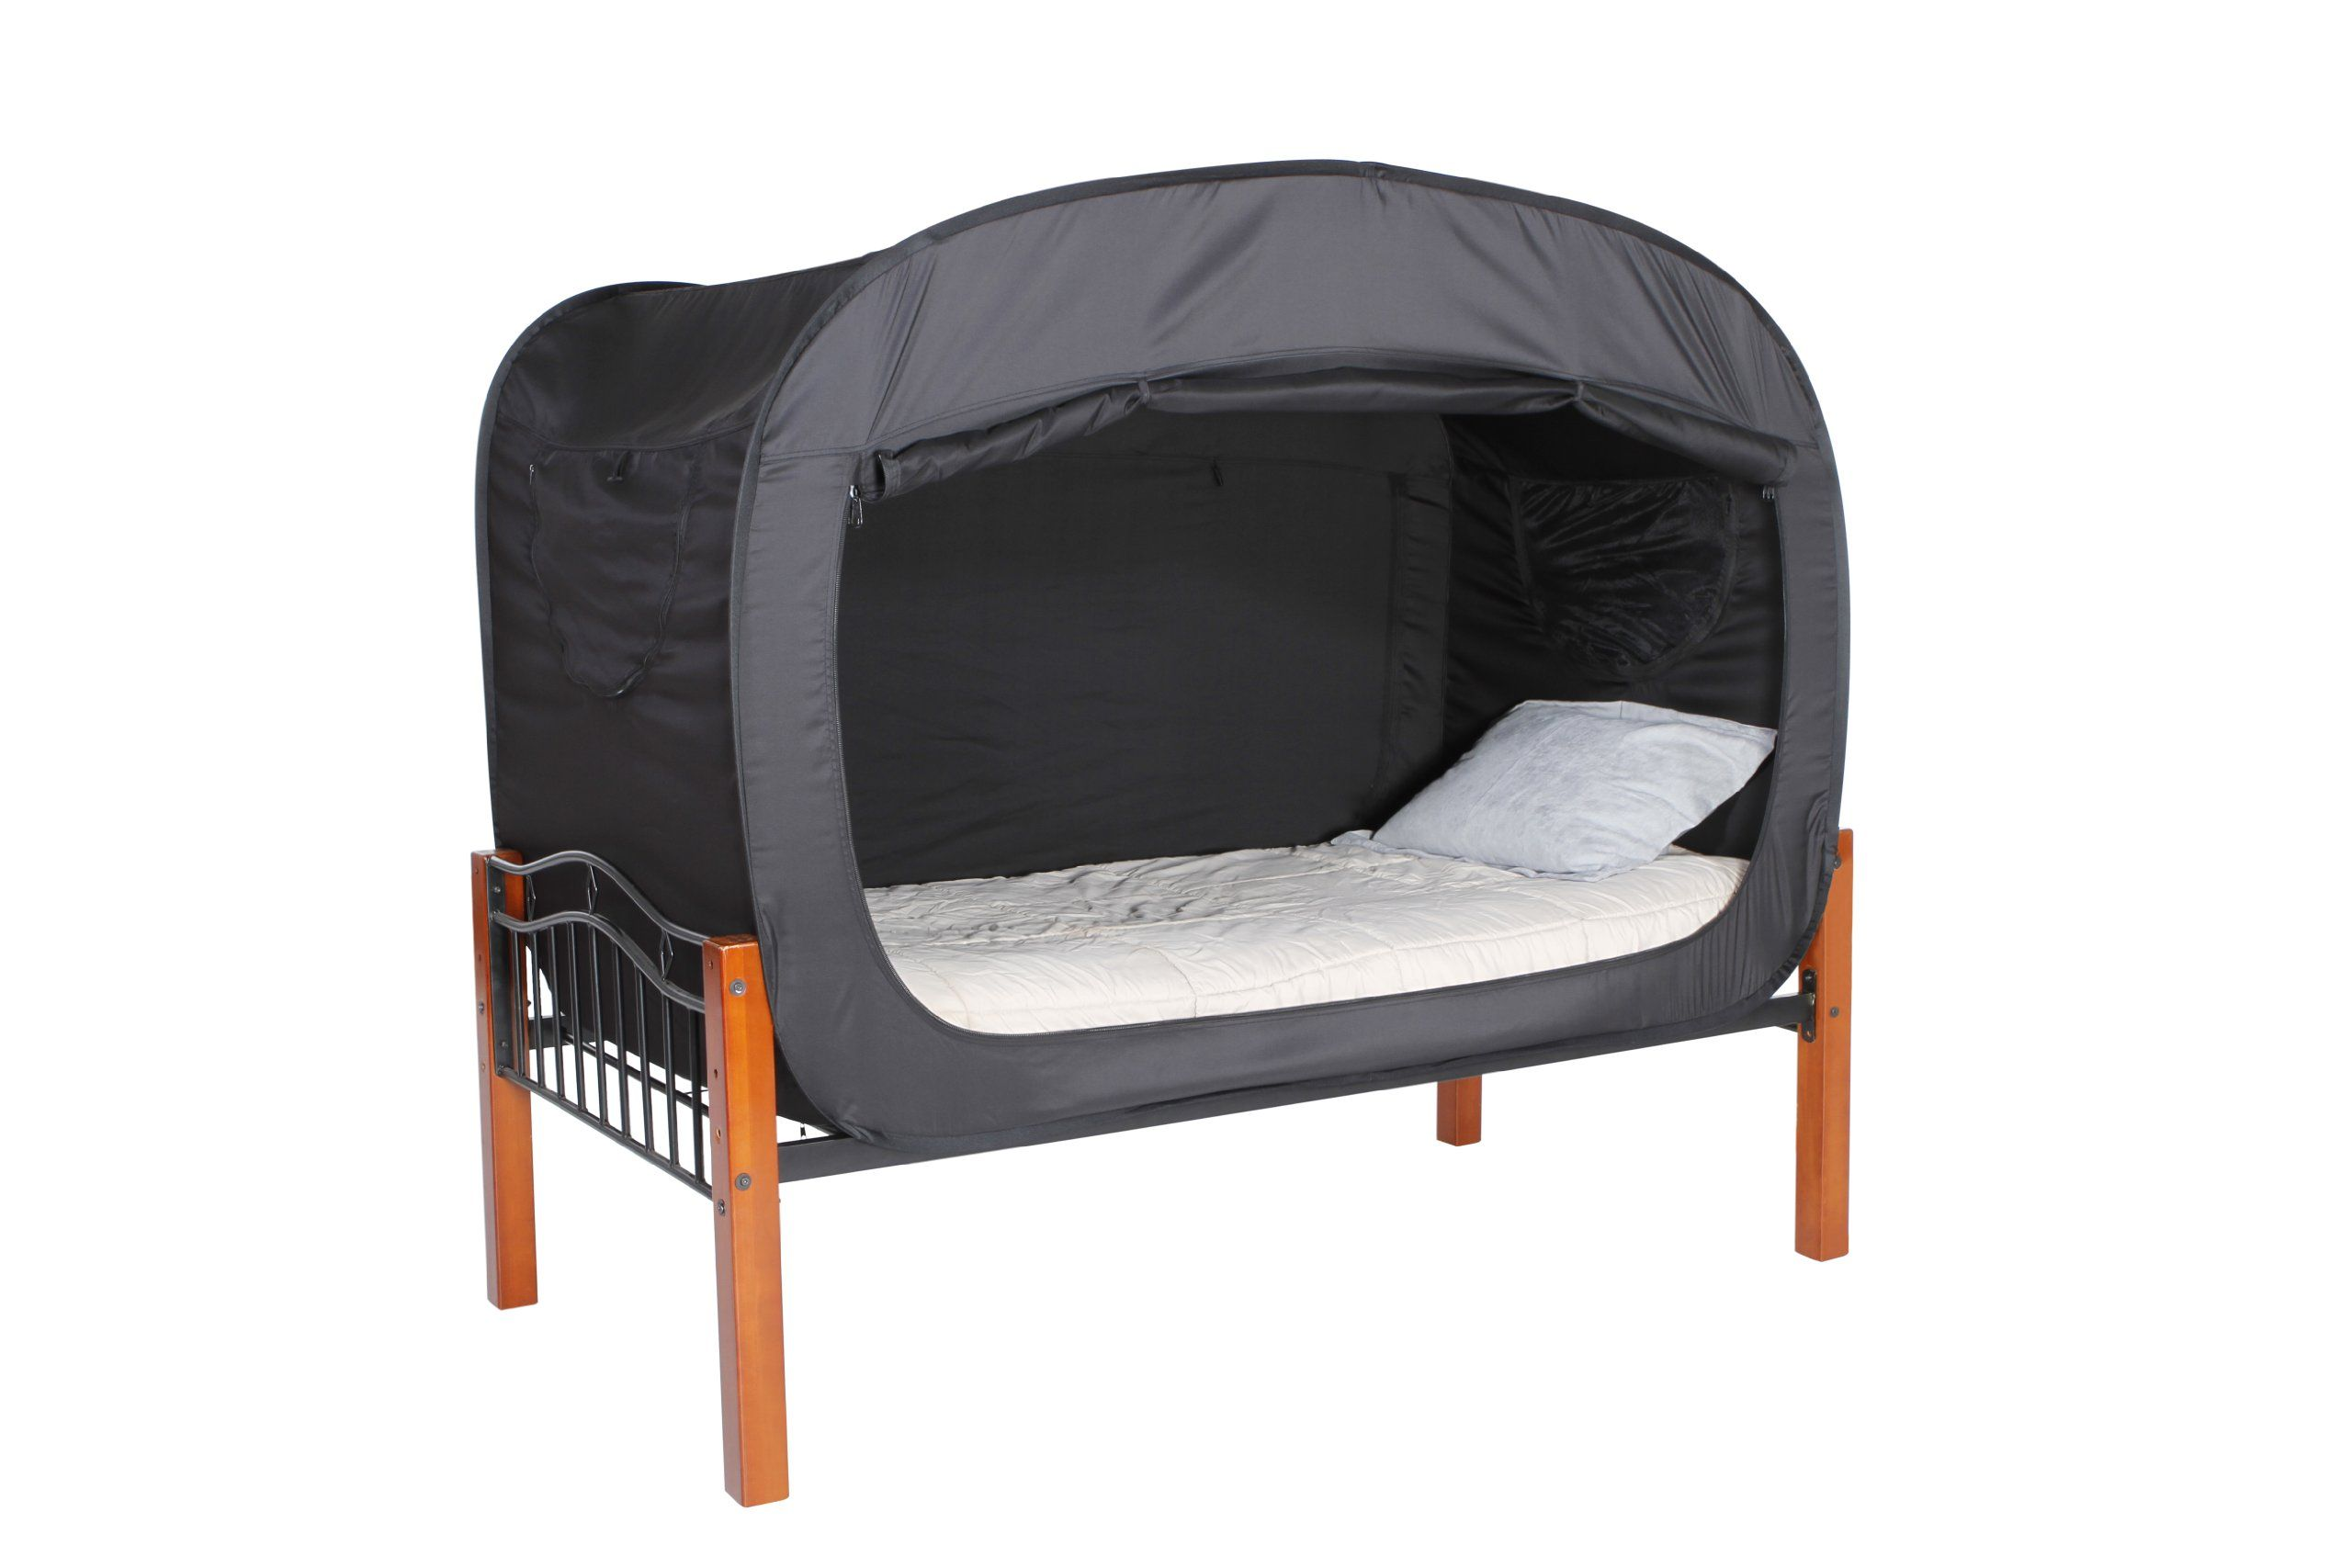 Privacy Pop Bed Tent Bed tent, Privacy pop